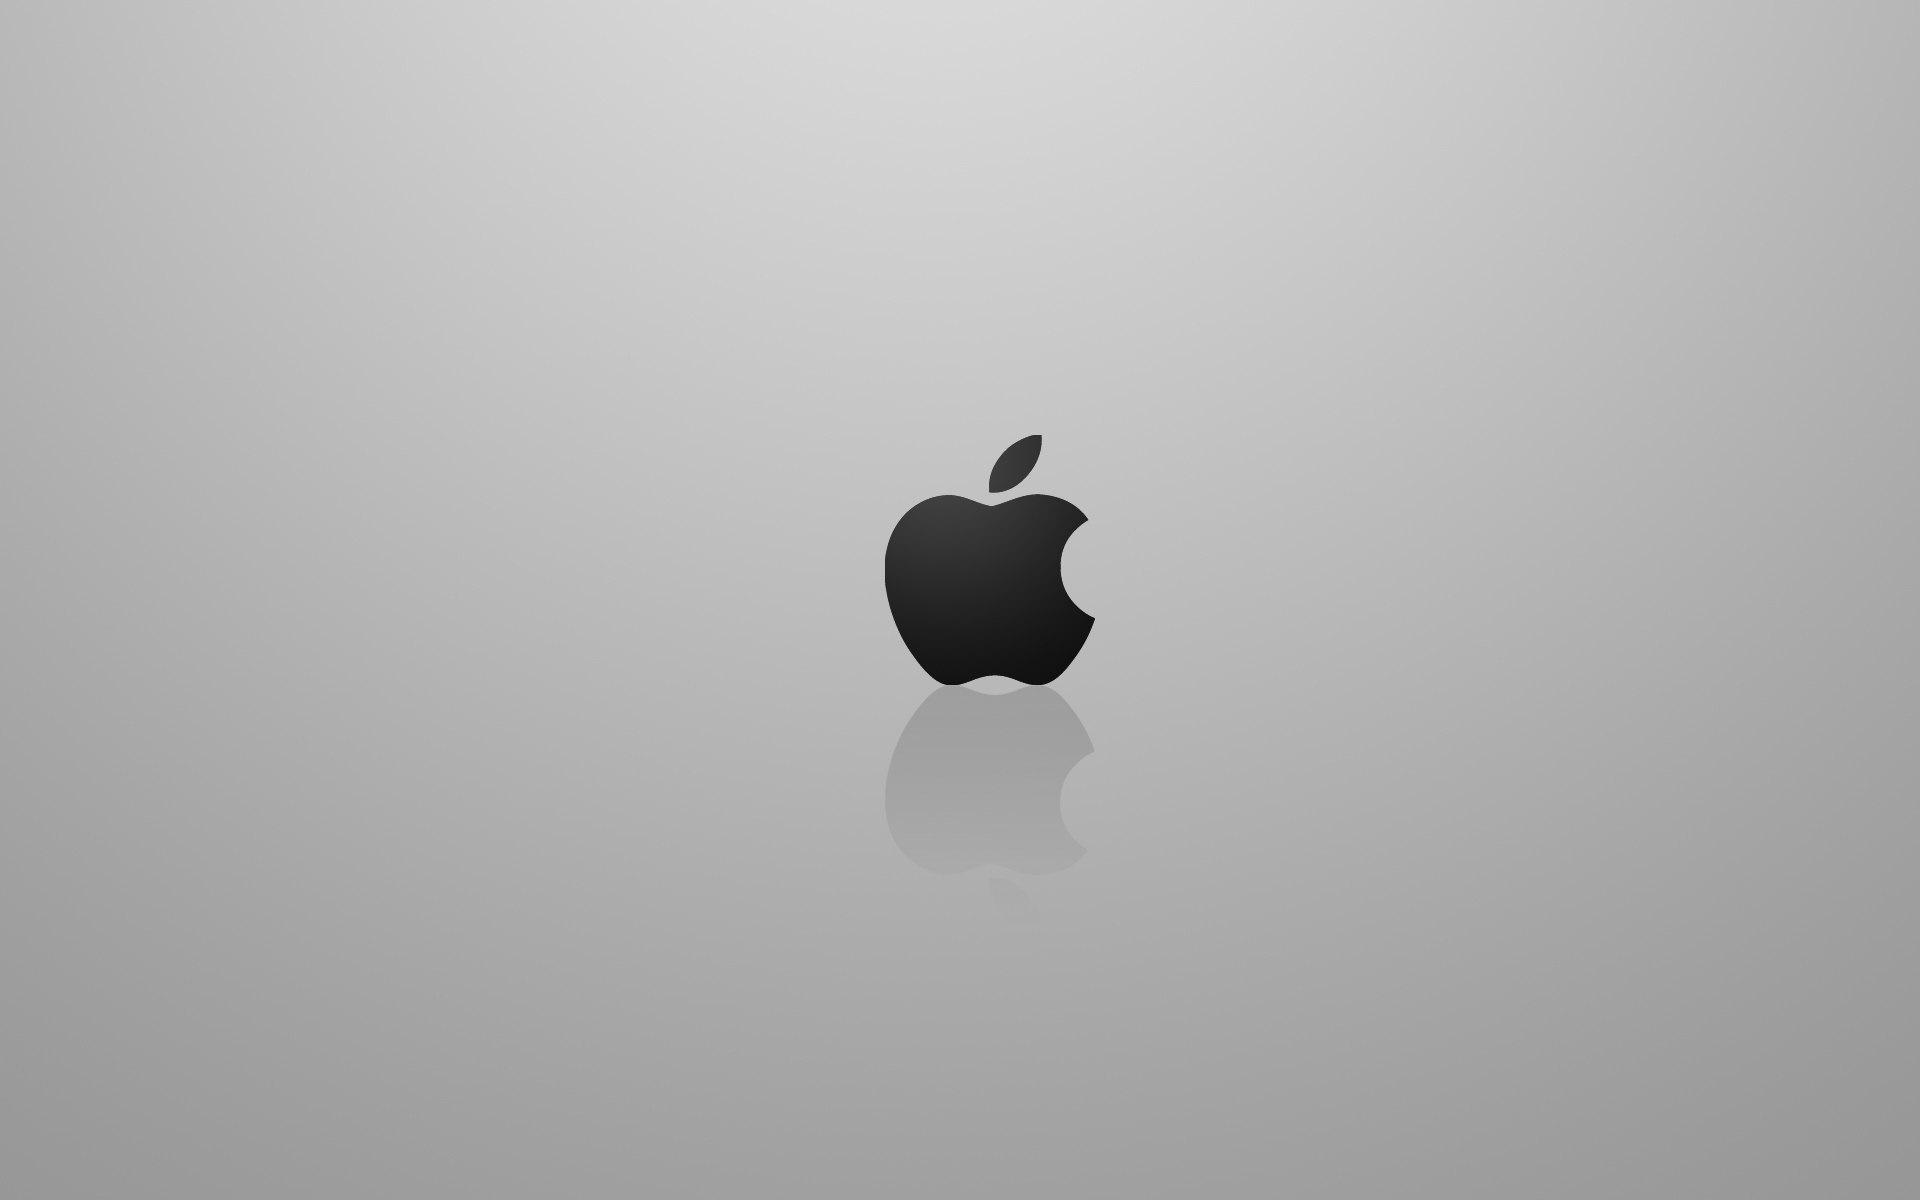 Mac Apple Wallpaper HD